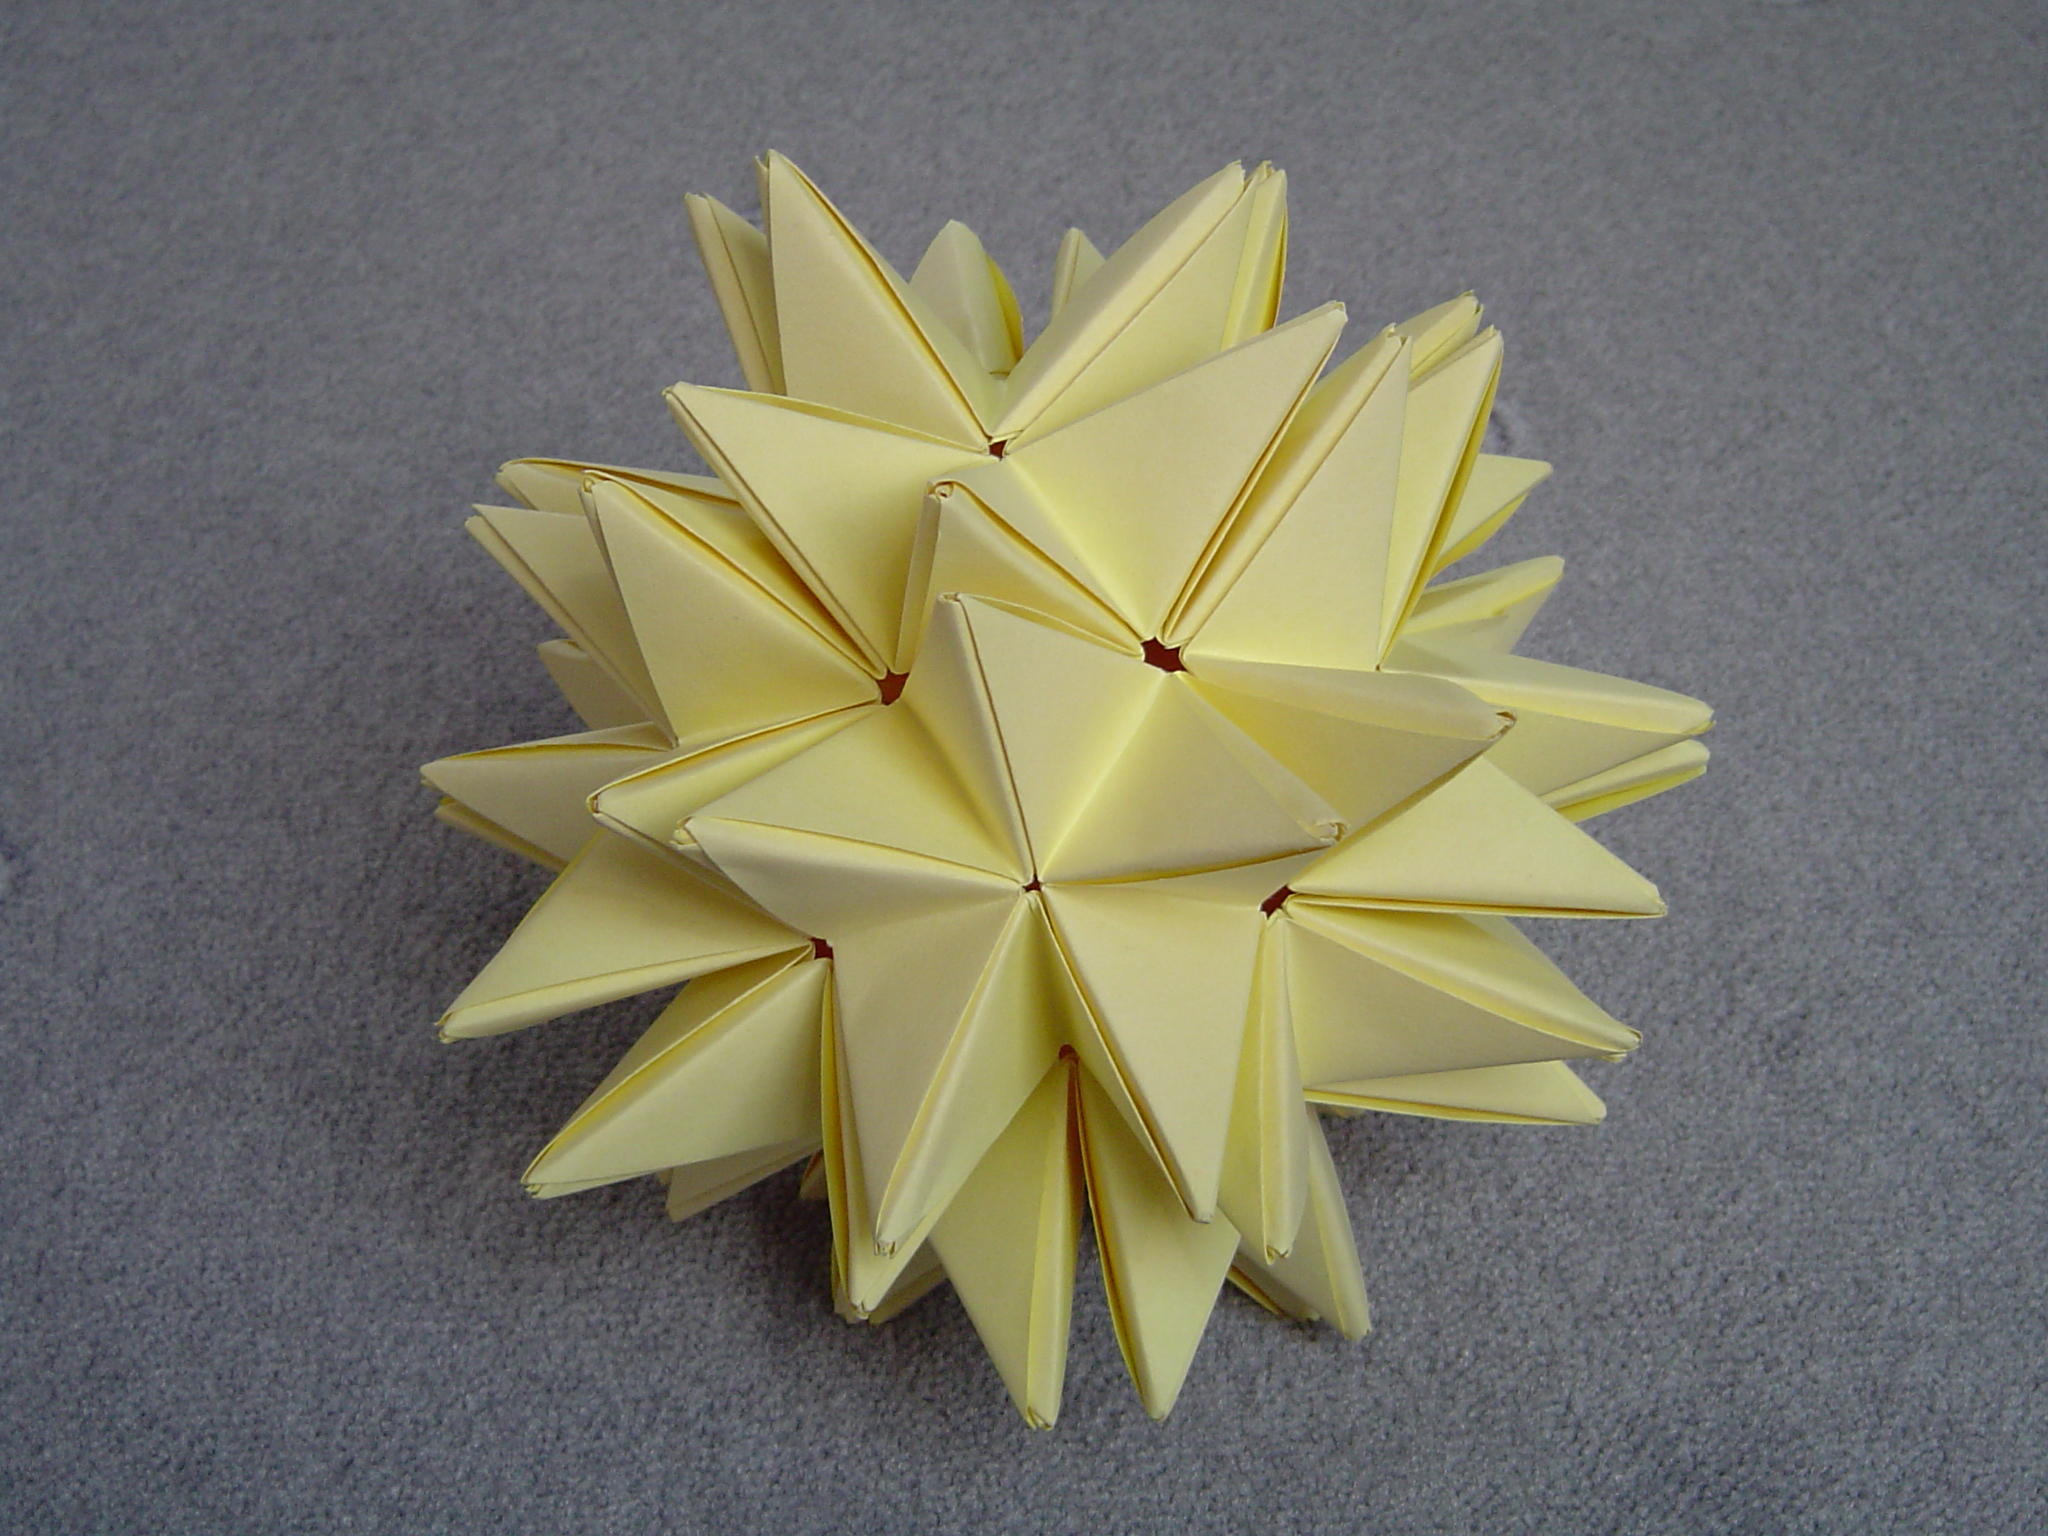 Transforming Origami Spike Ball - YouTube | Origami ball, Origami ... | 480x640